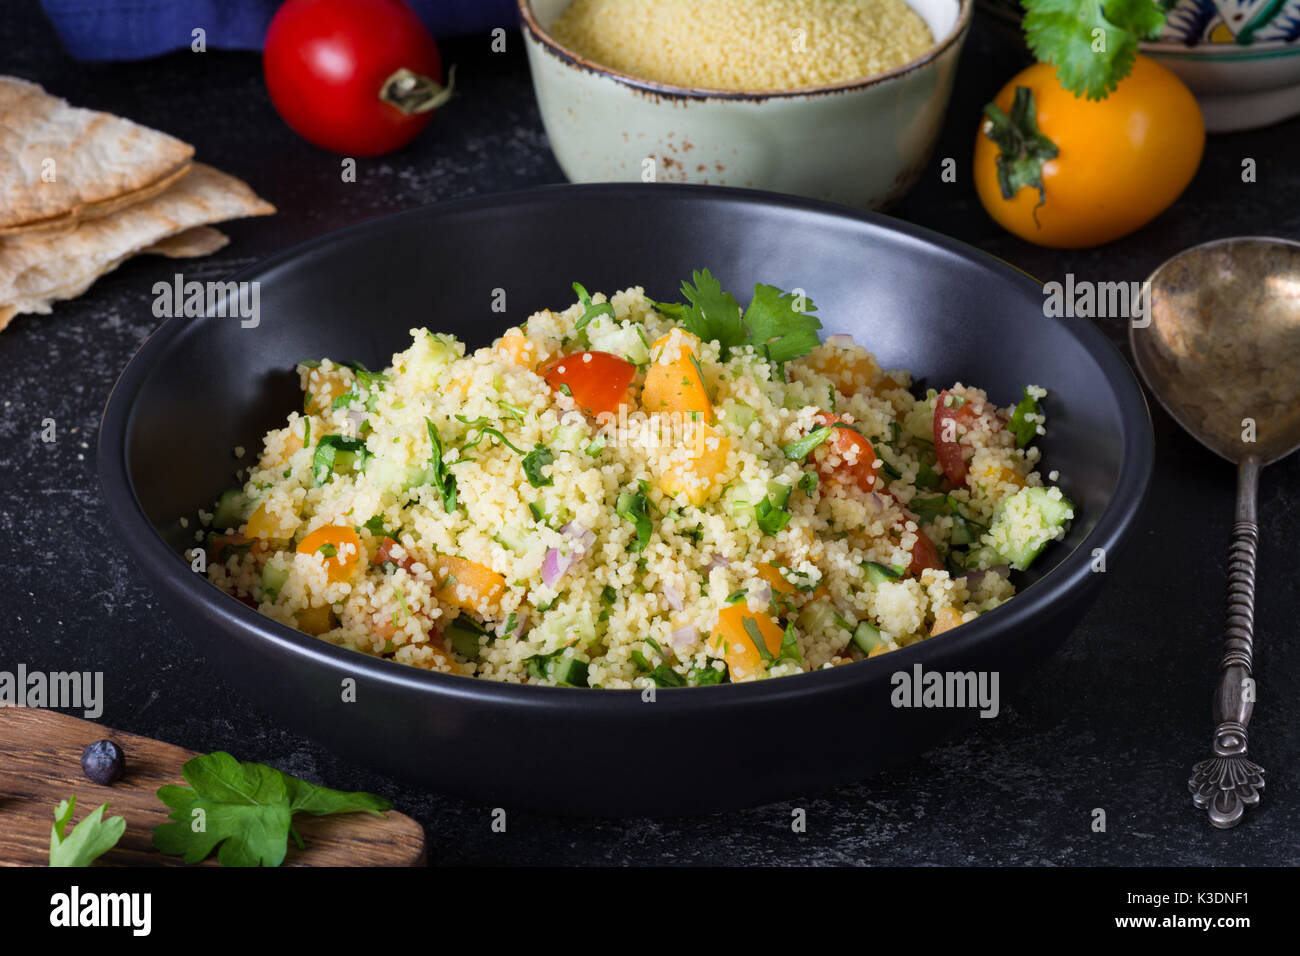 Lebanese arabic cuisine: healthy delicious salad with cous cous, fresh vegetables and greens called Tabbouleh in Stock Photo